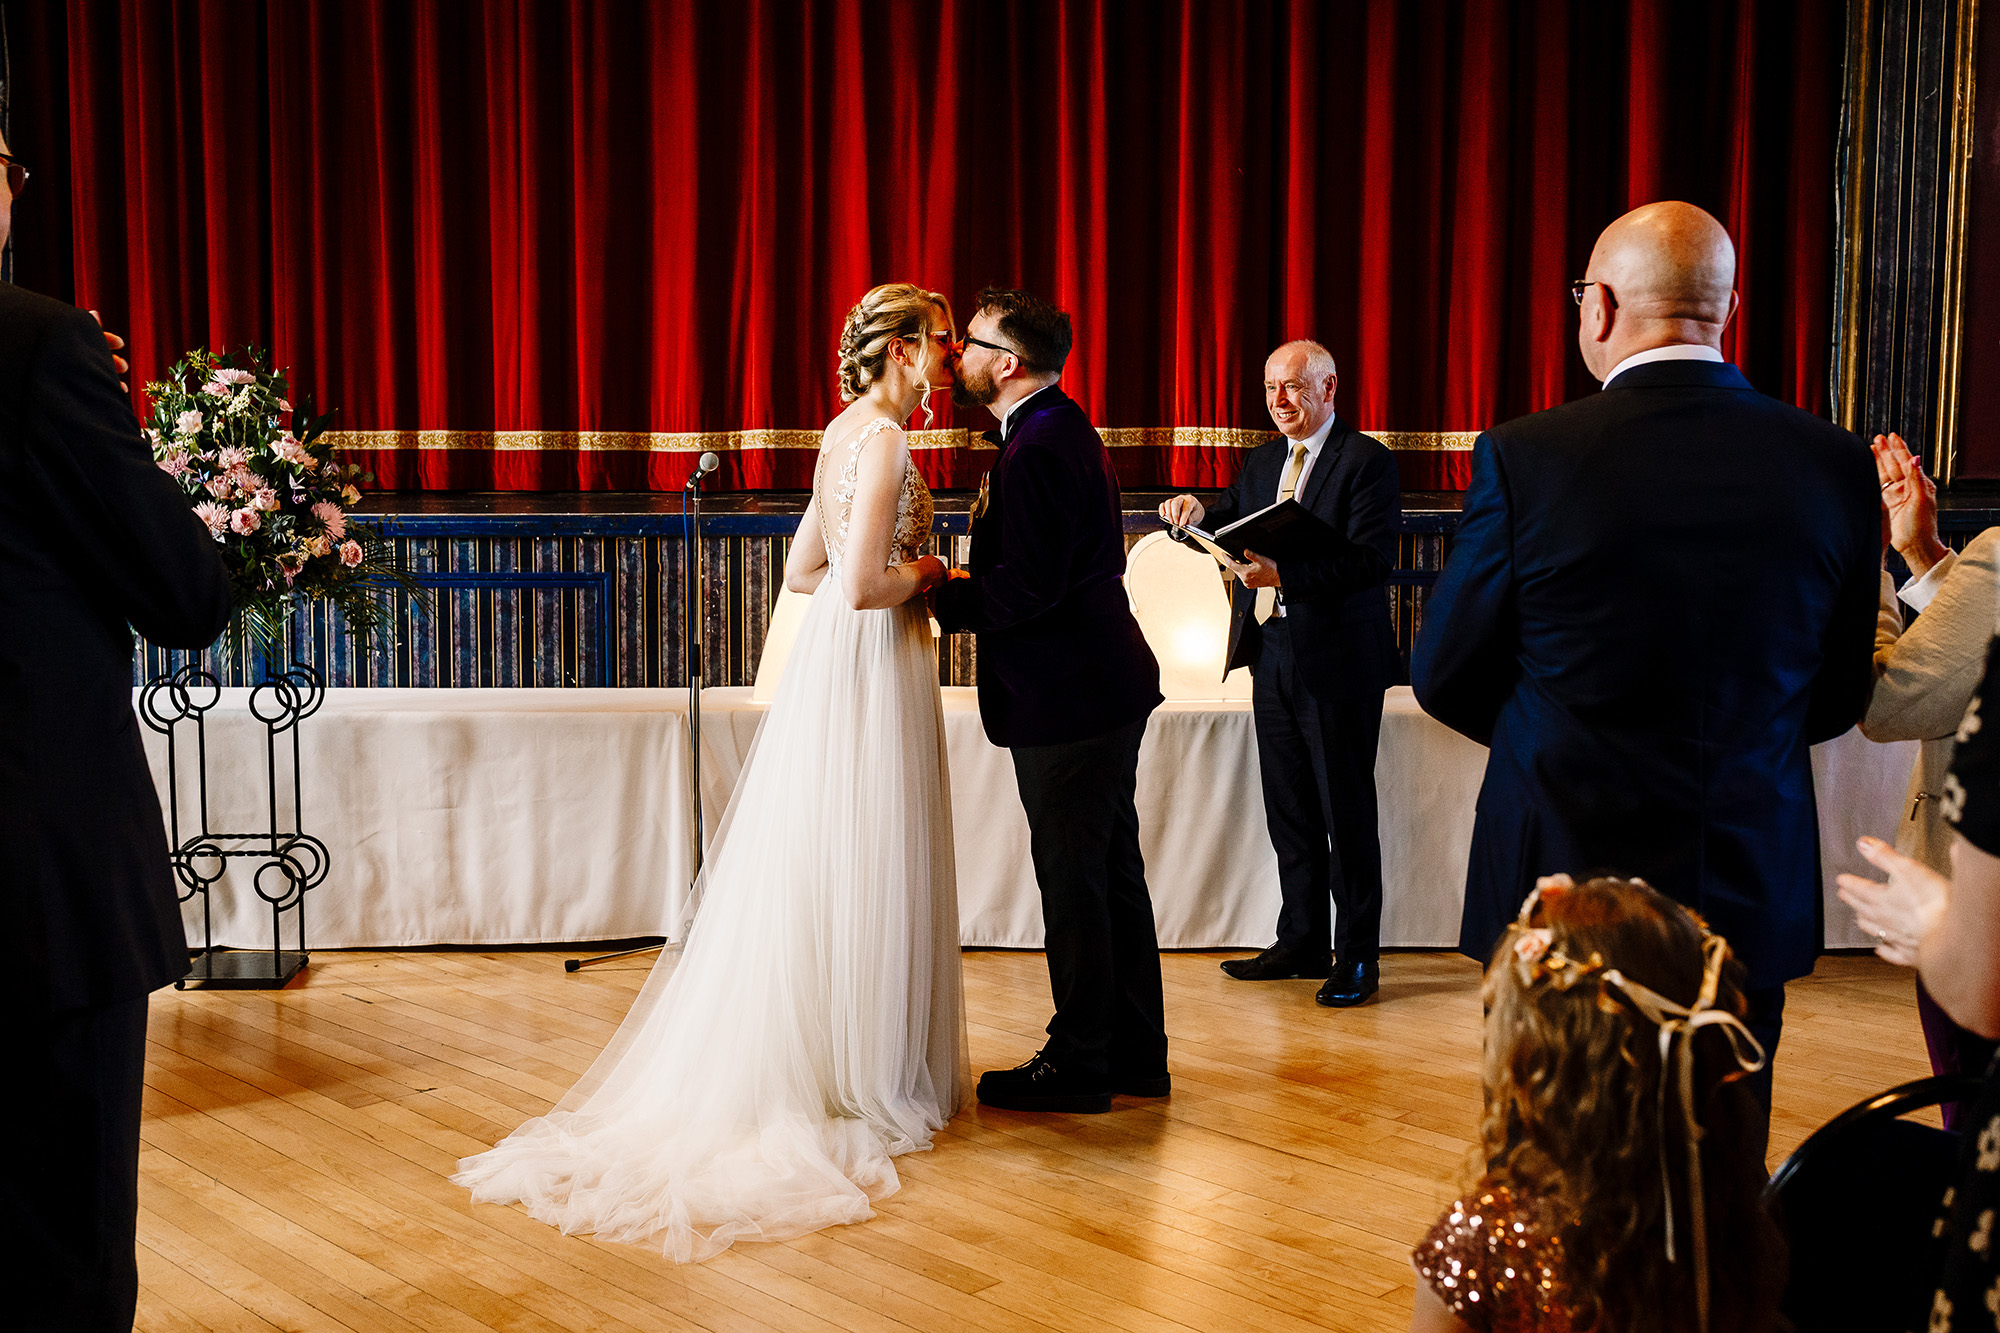 A bride and groom having their first kiss in front of the stage at Guiseley Theatre